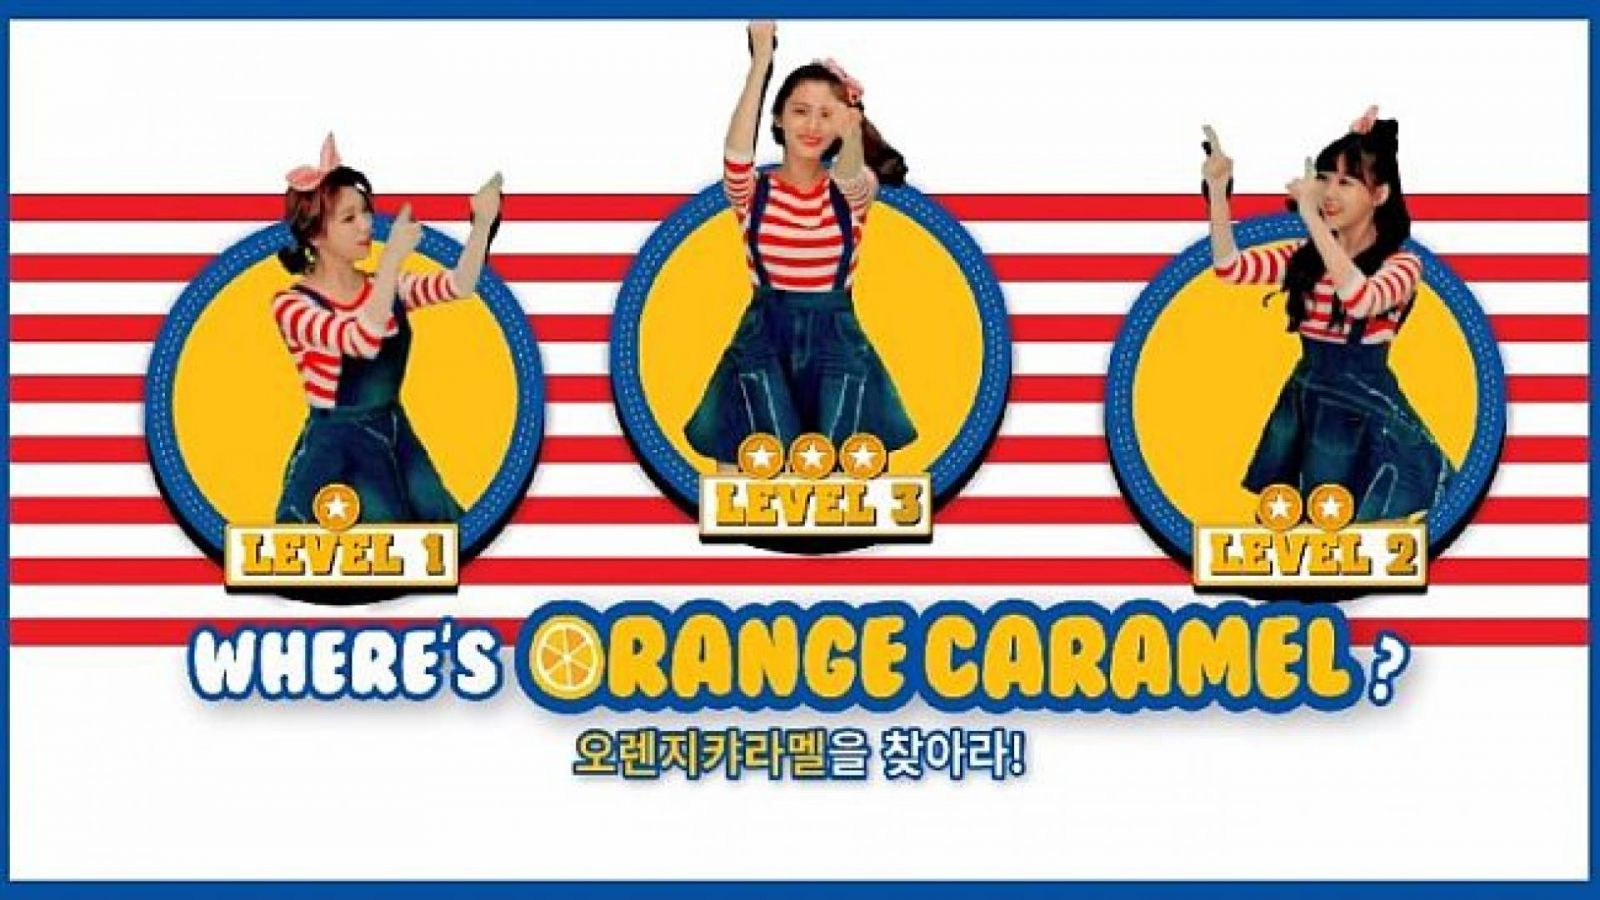 Novo single do Orange Caramel © Pledis Entertainment